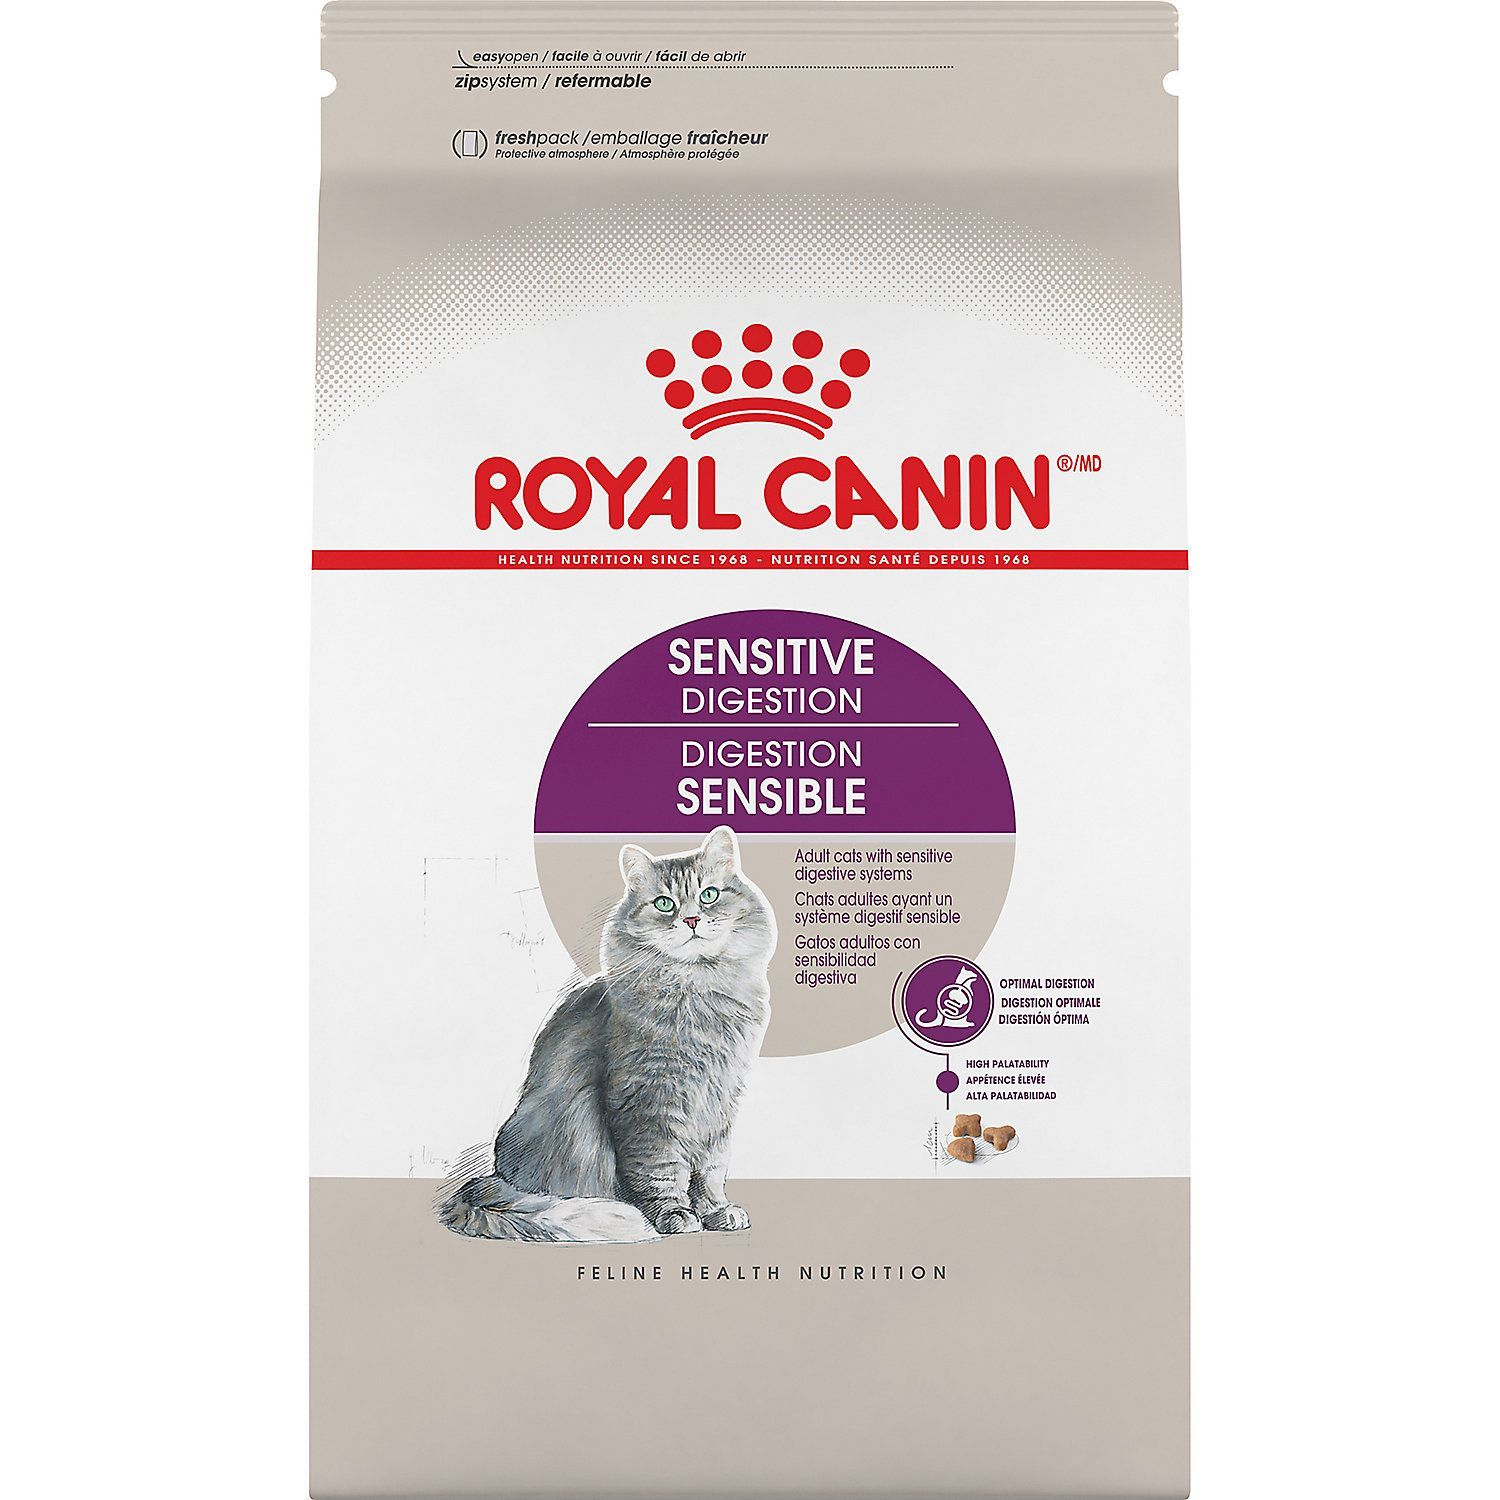 Royal Canin Feline Health Nutrition Special 33 Dry Cat Food Sittingcat Feline Health Cat Nutrition Nutrition